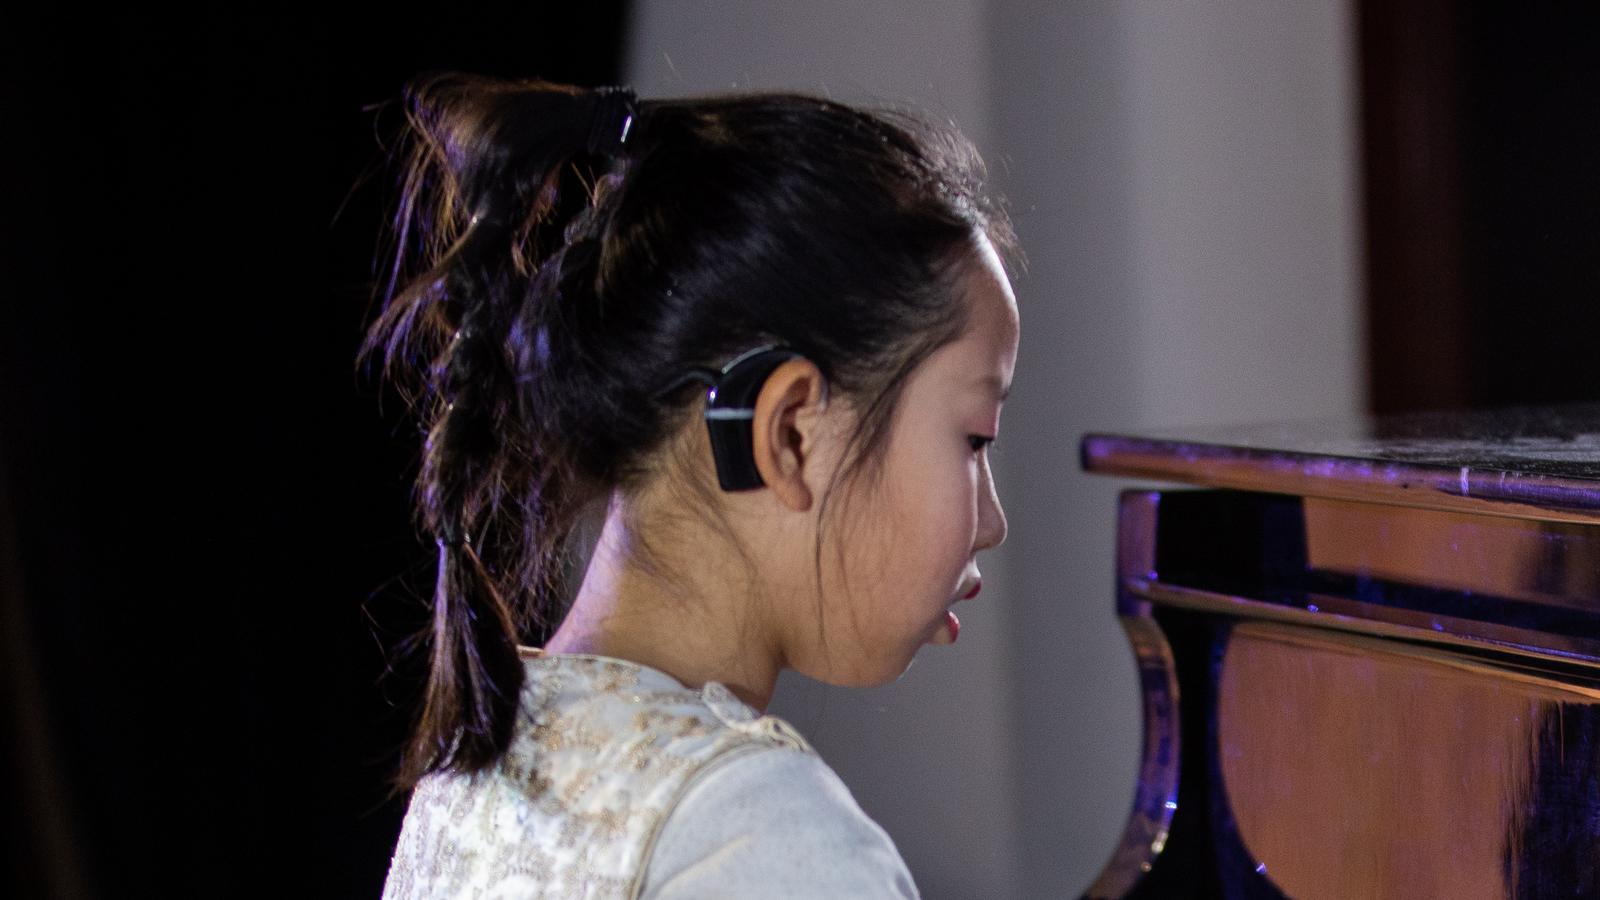 A girl wearing an implant plays the piano